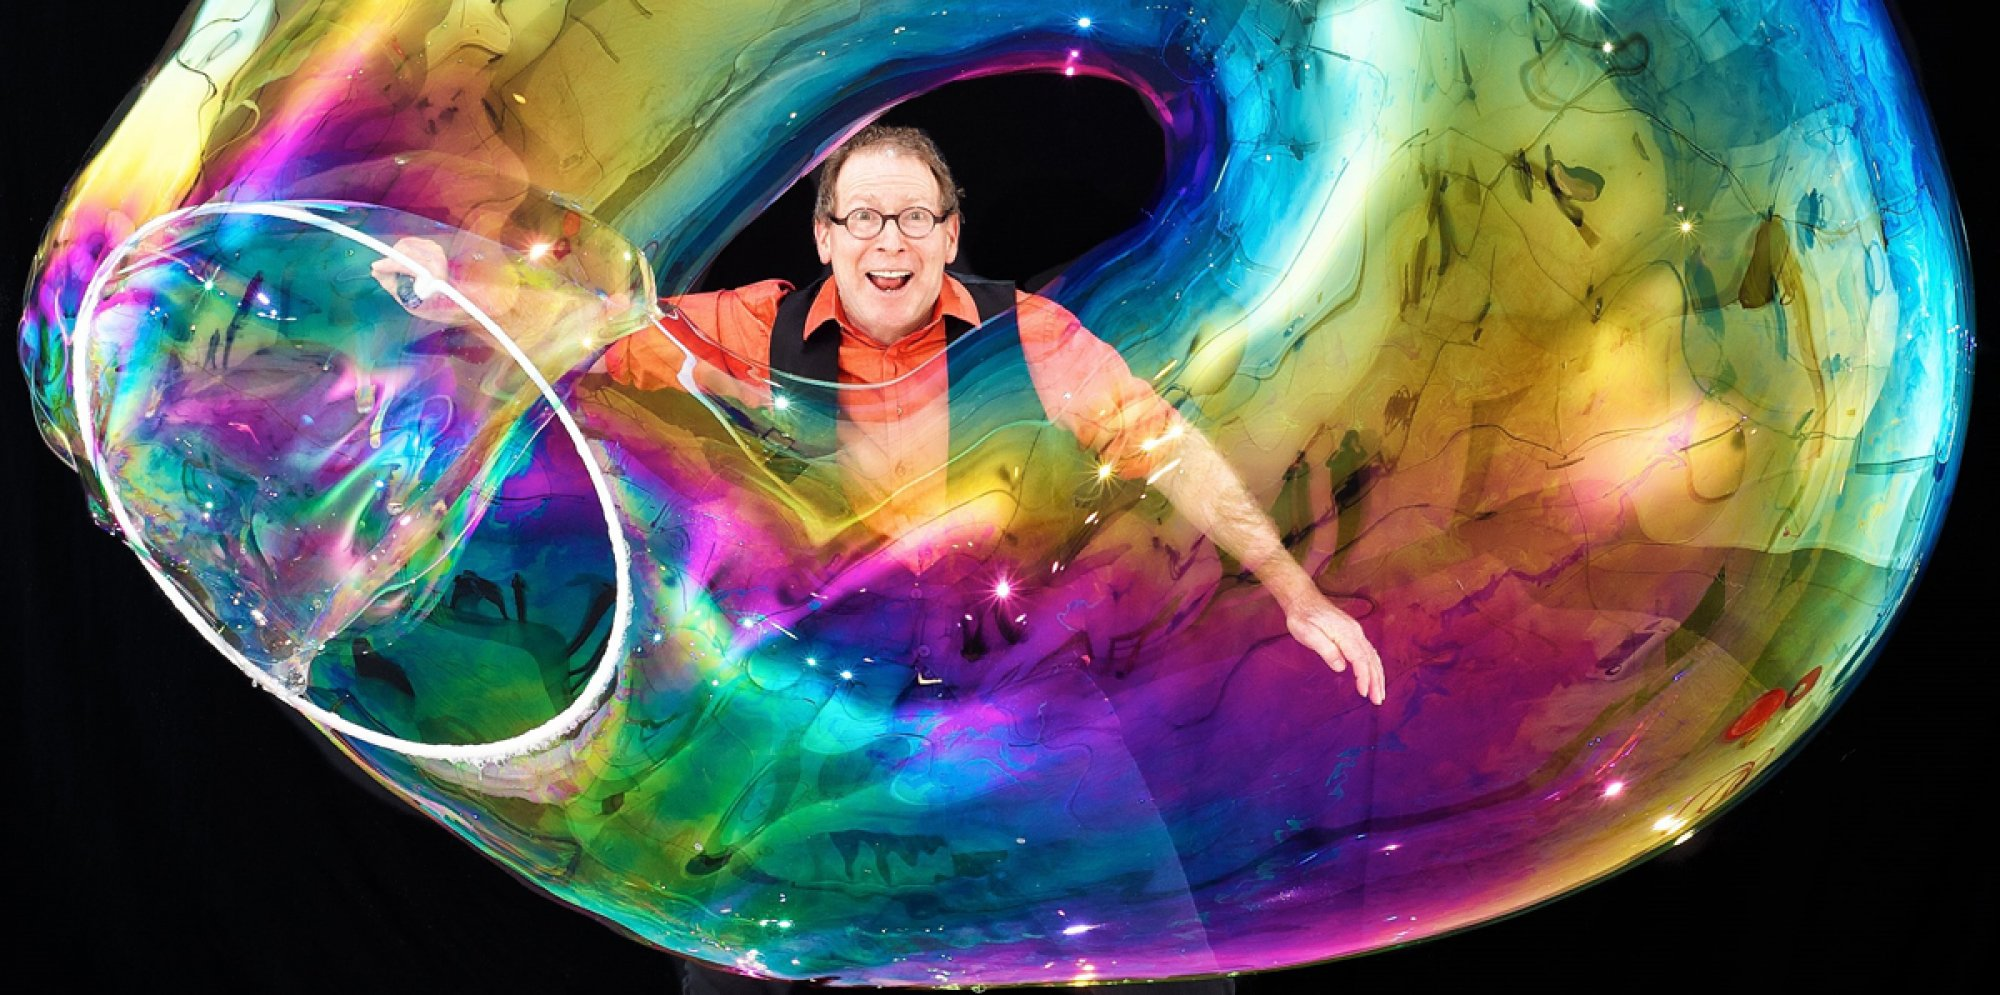 Louis Pearl in a rainbow-coloured bubble ring